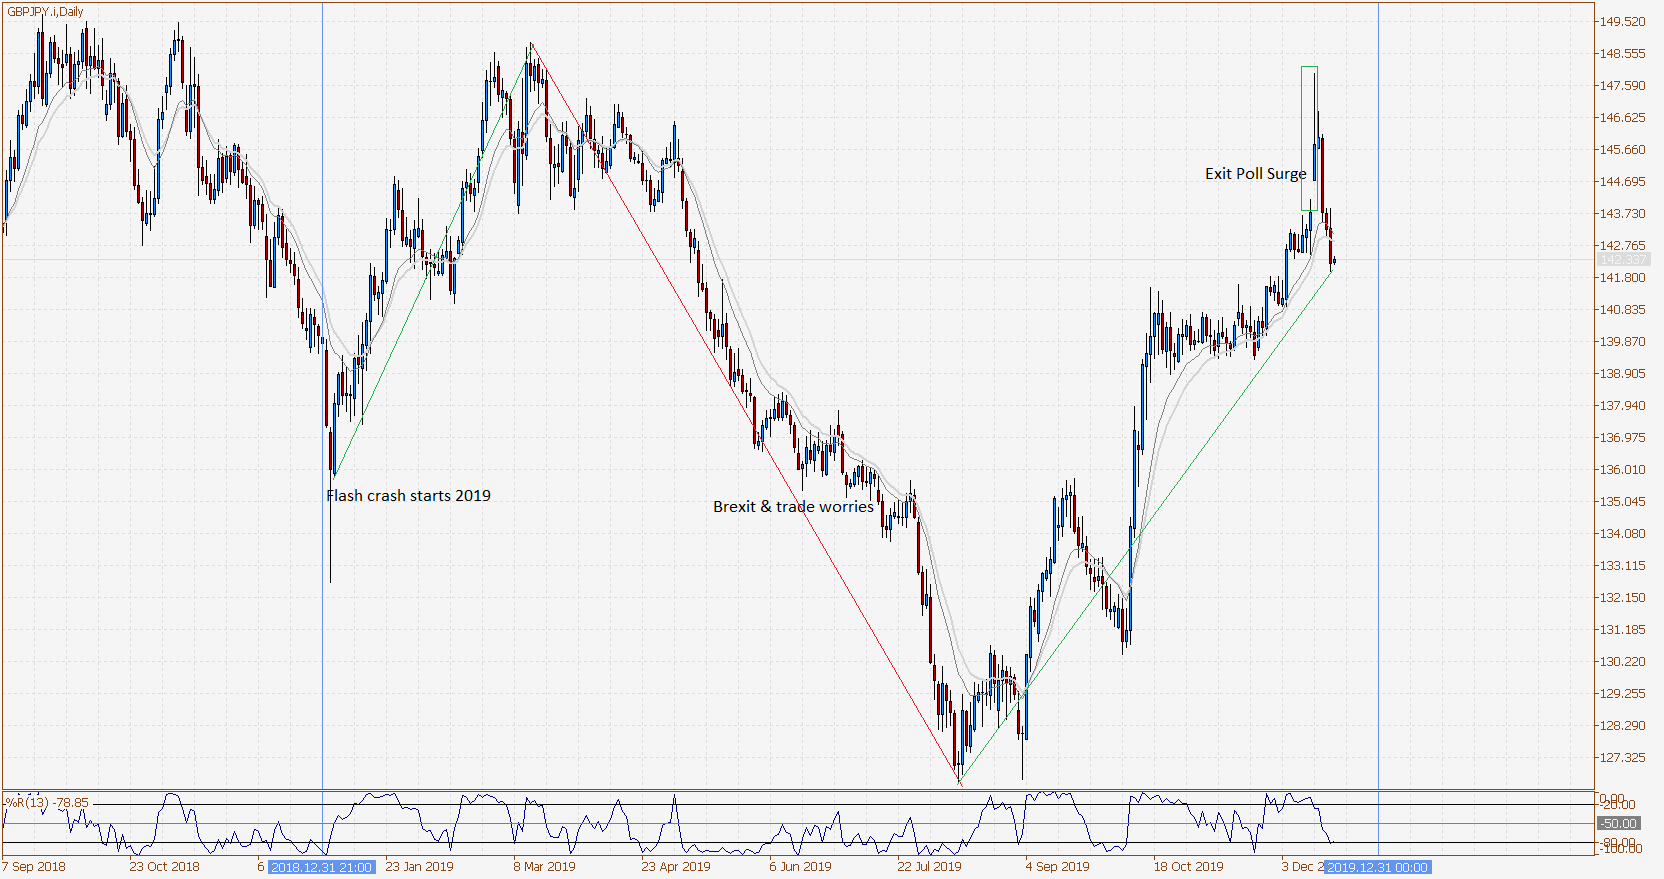 GBP JPY Daily 2019